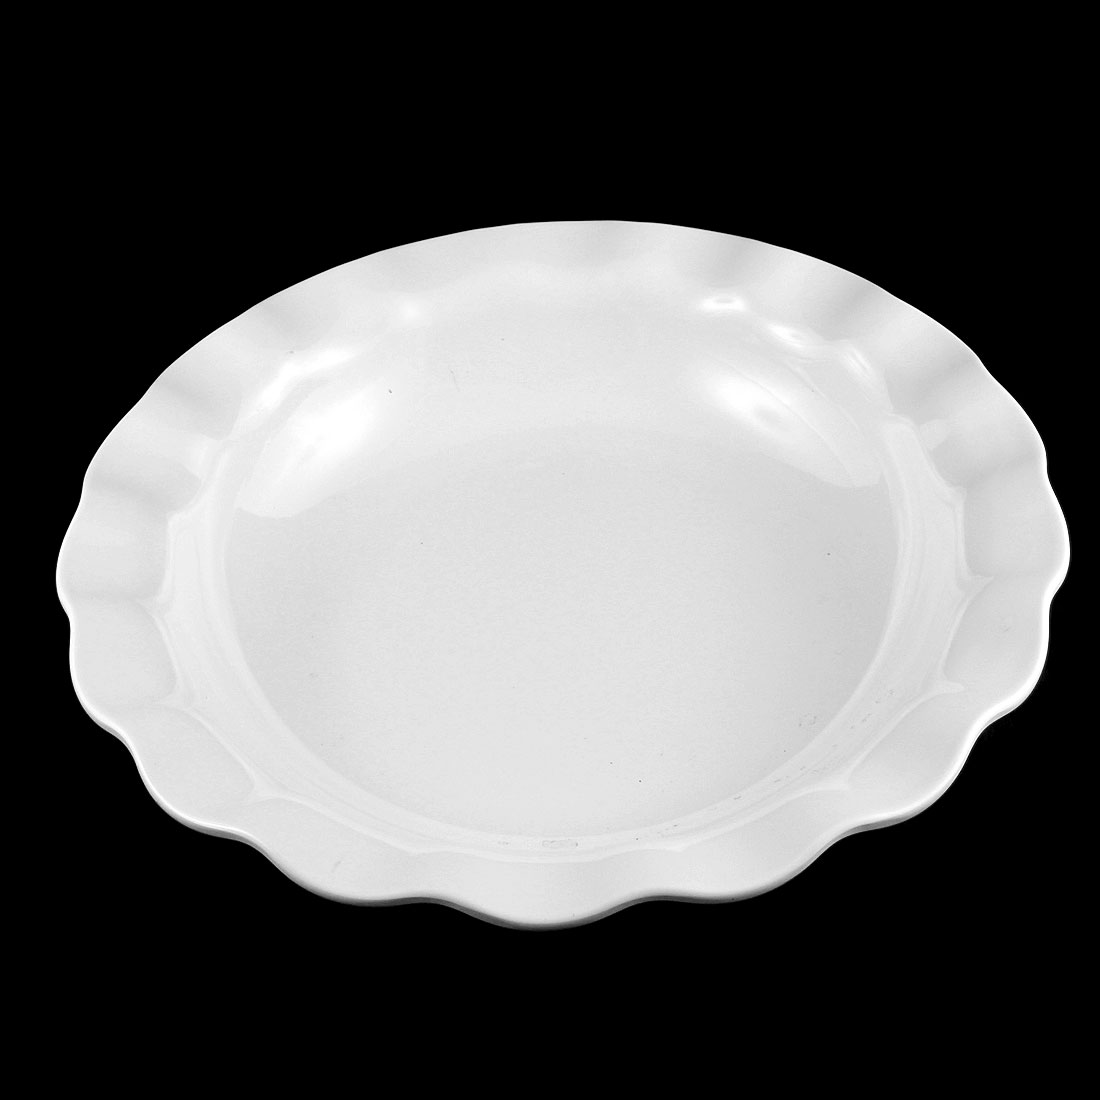 "Hotel Lotus Design Fruits Dessert Serving Dish Plate White 14"" Dia"